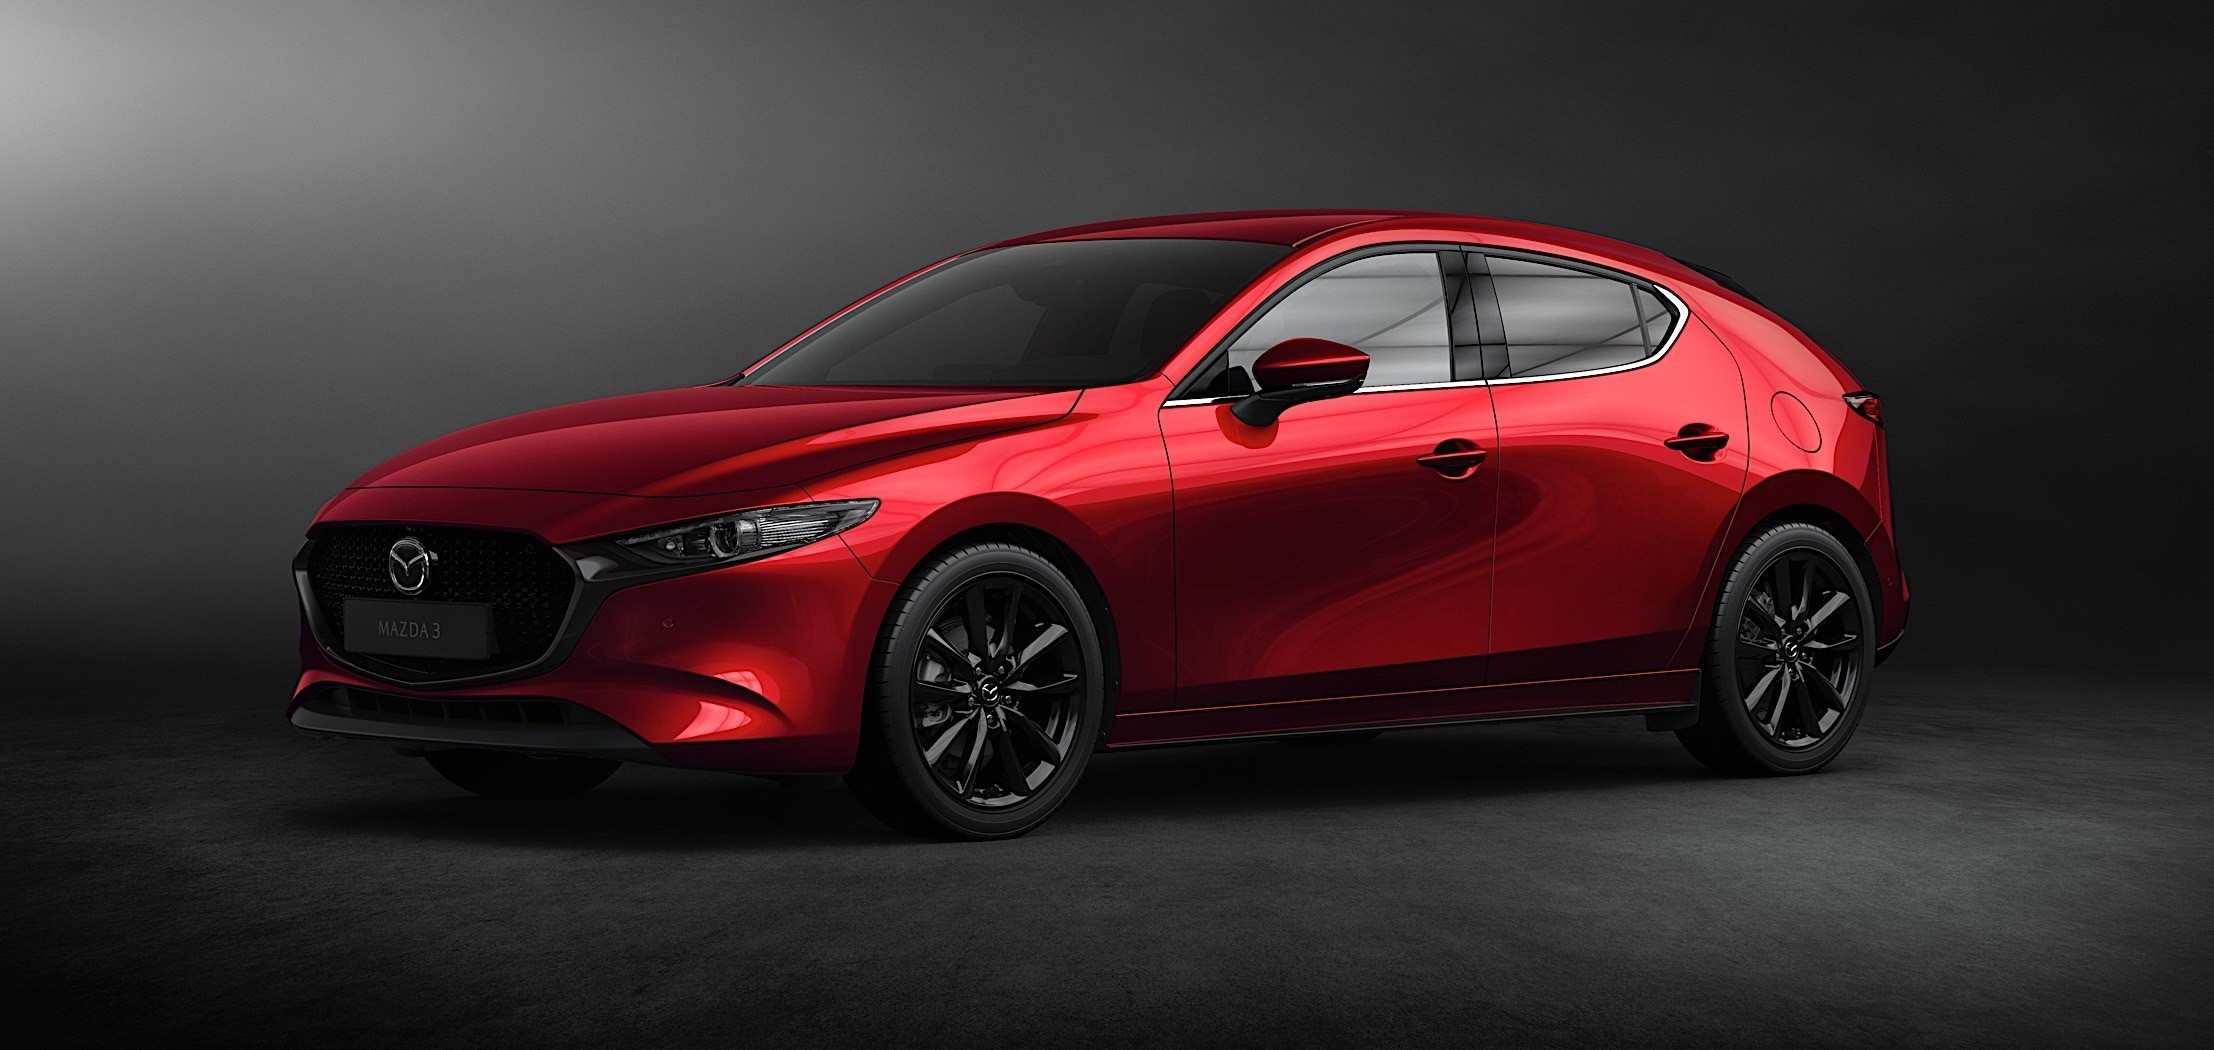 93 Concept of 2020 Mazda 3 Hatch Configurations with 2020 Mazda 3 Hatch